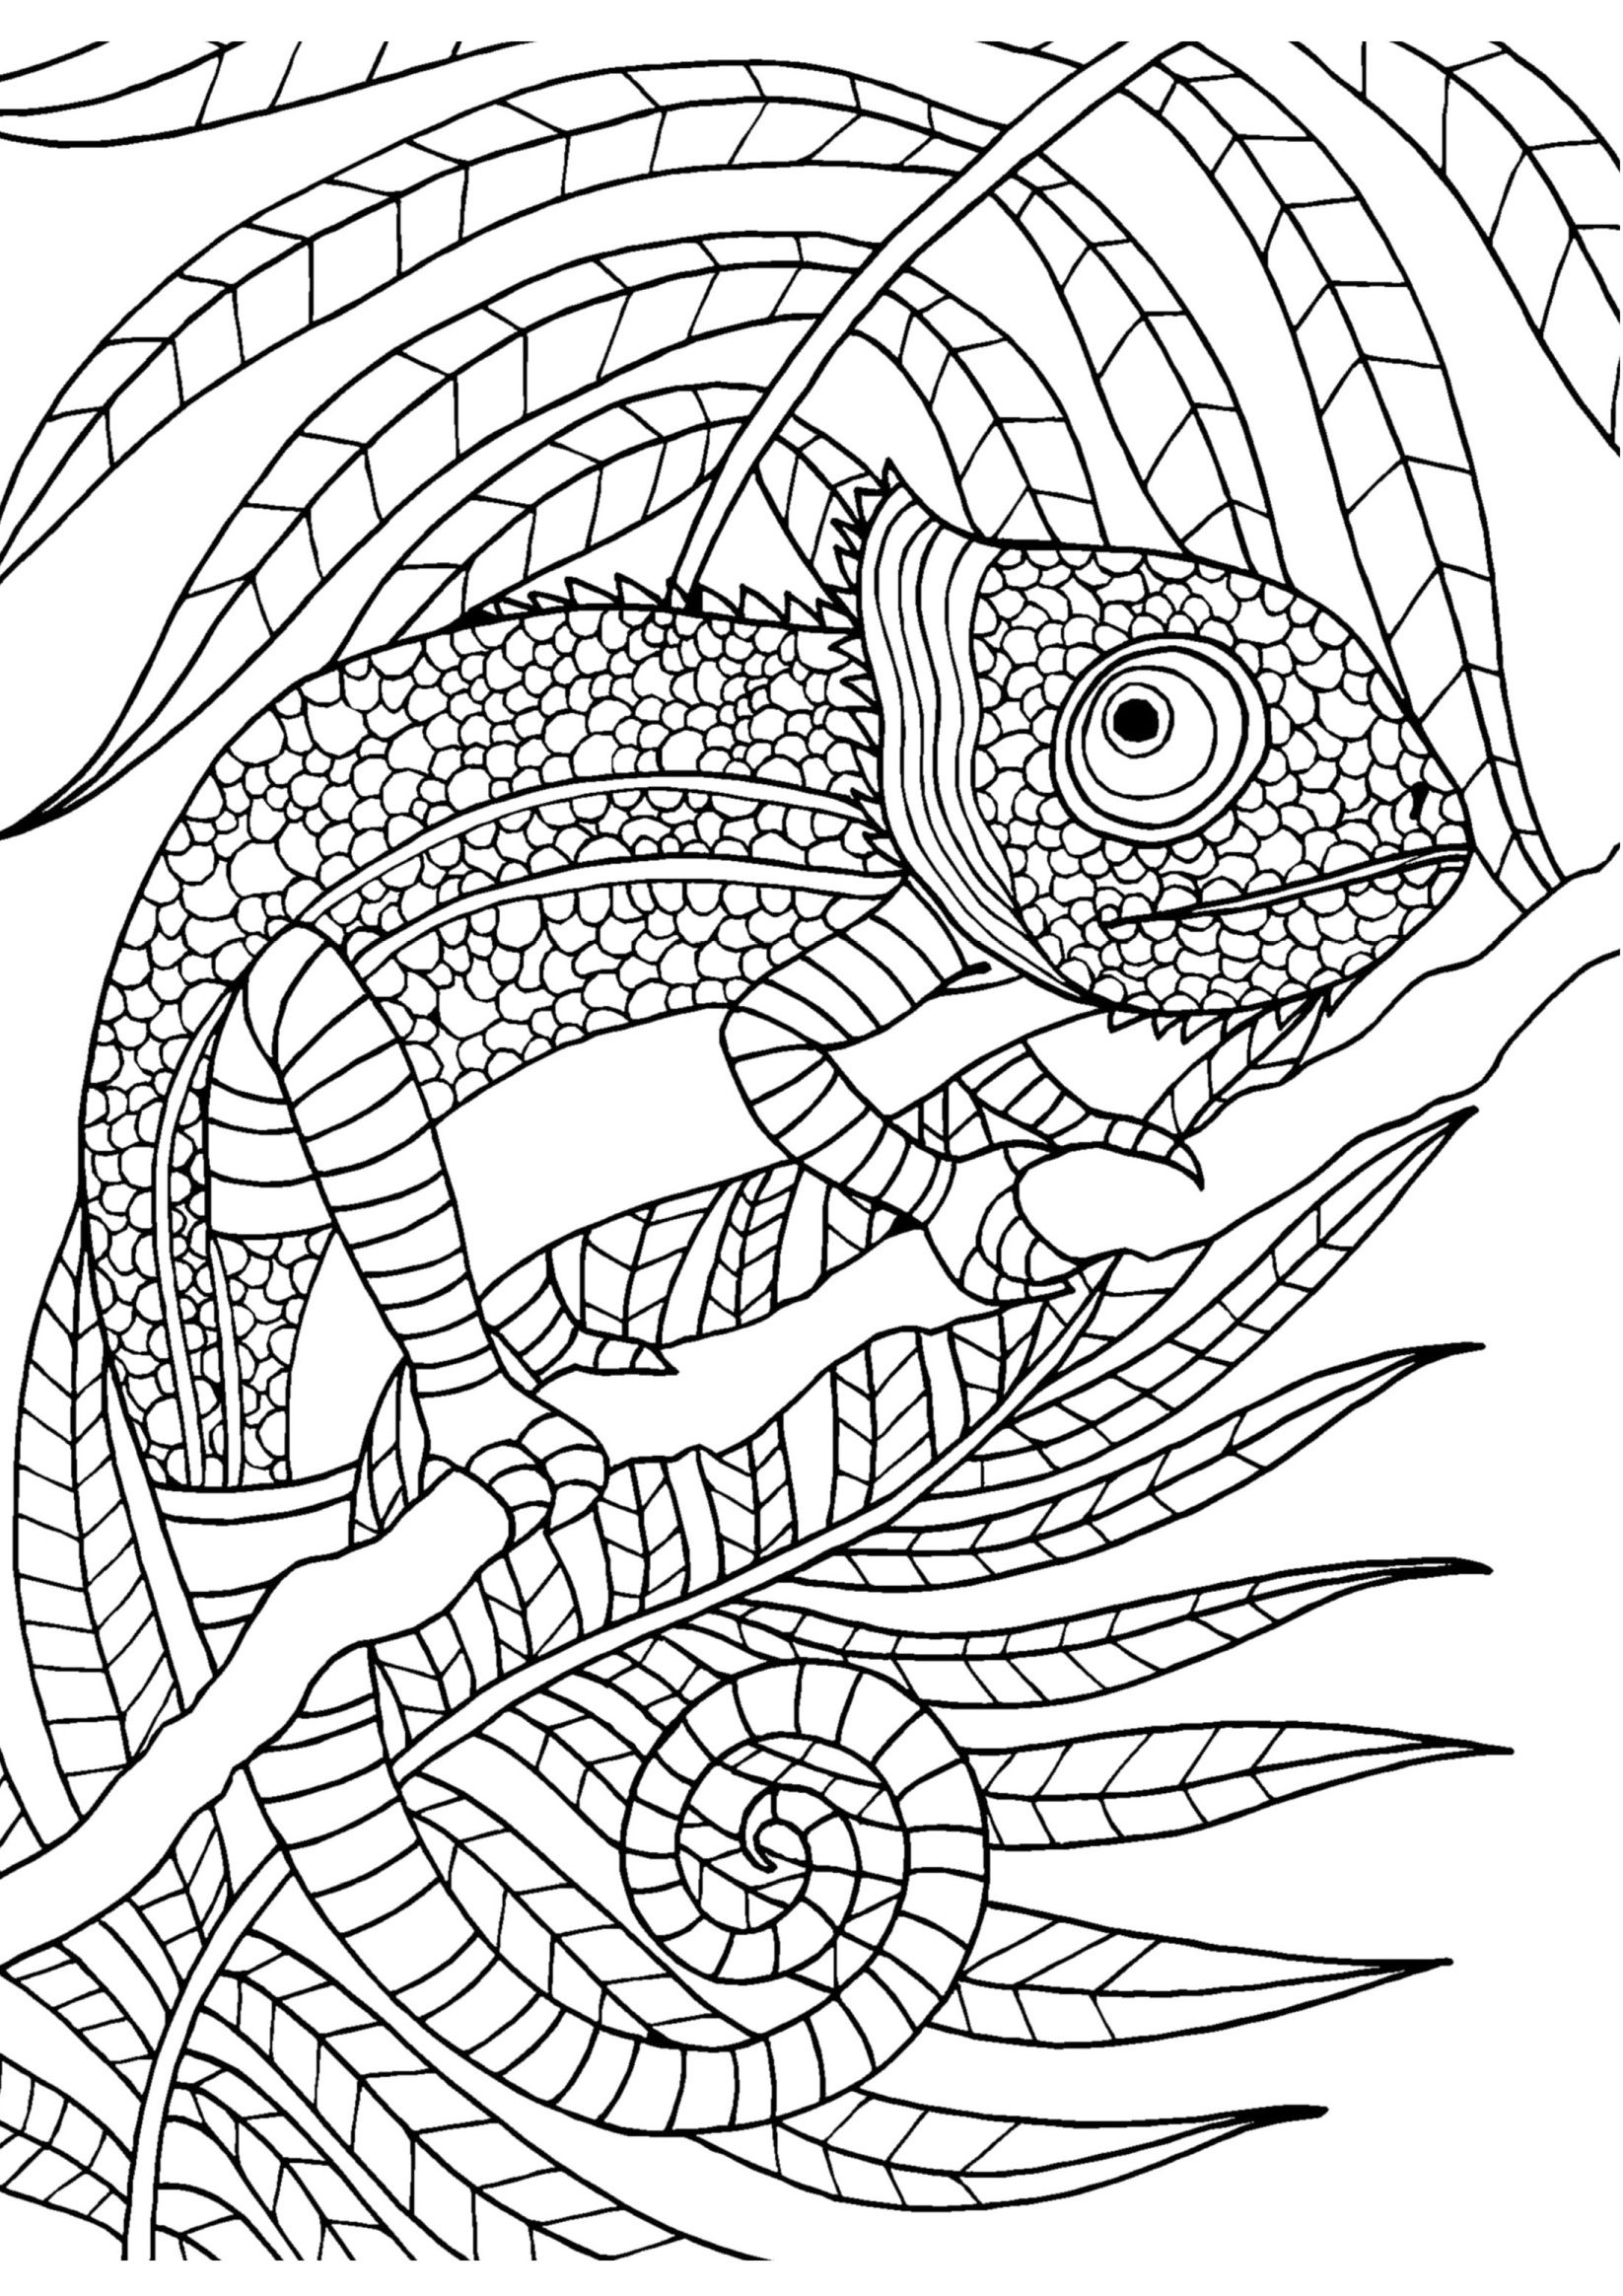 Chameleon adult colouring page : Colouring In Sheets - Art & Craft ...